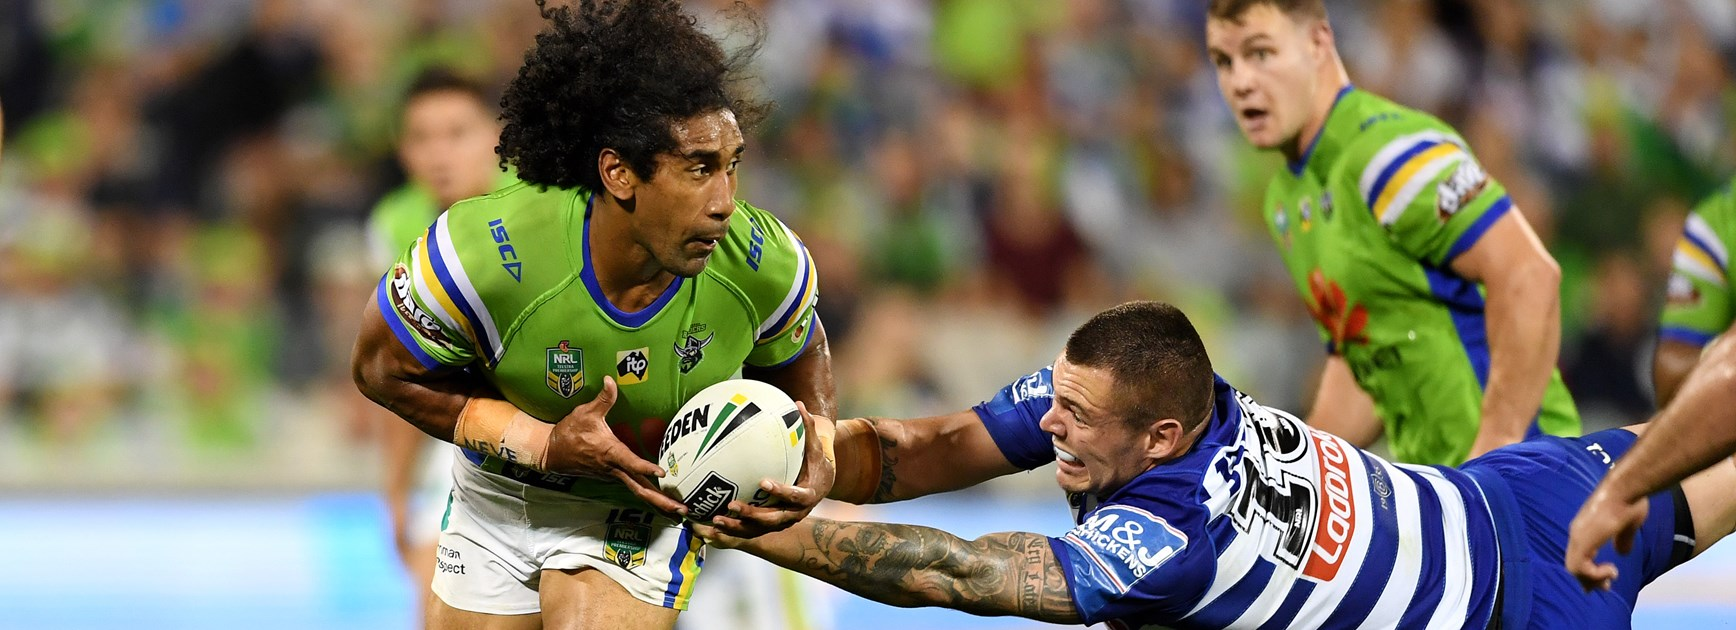 Raiders forward Sia Soliola.